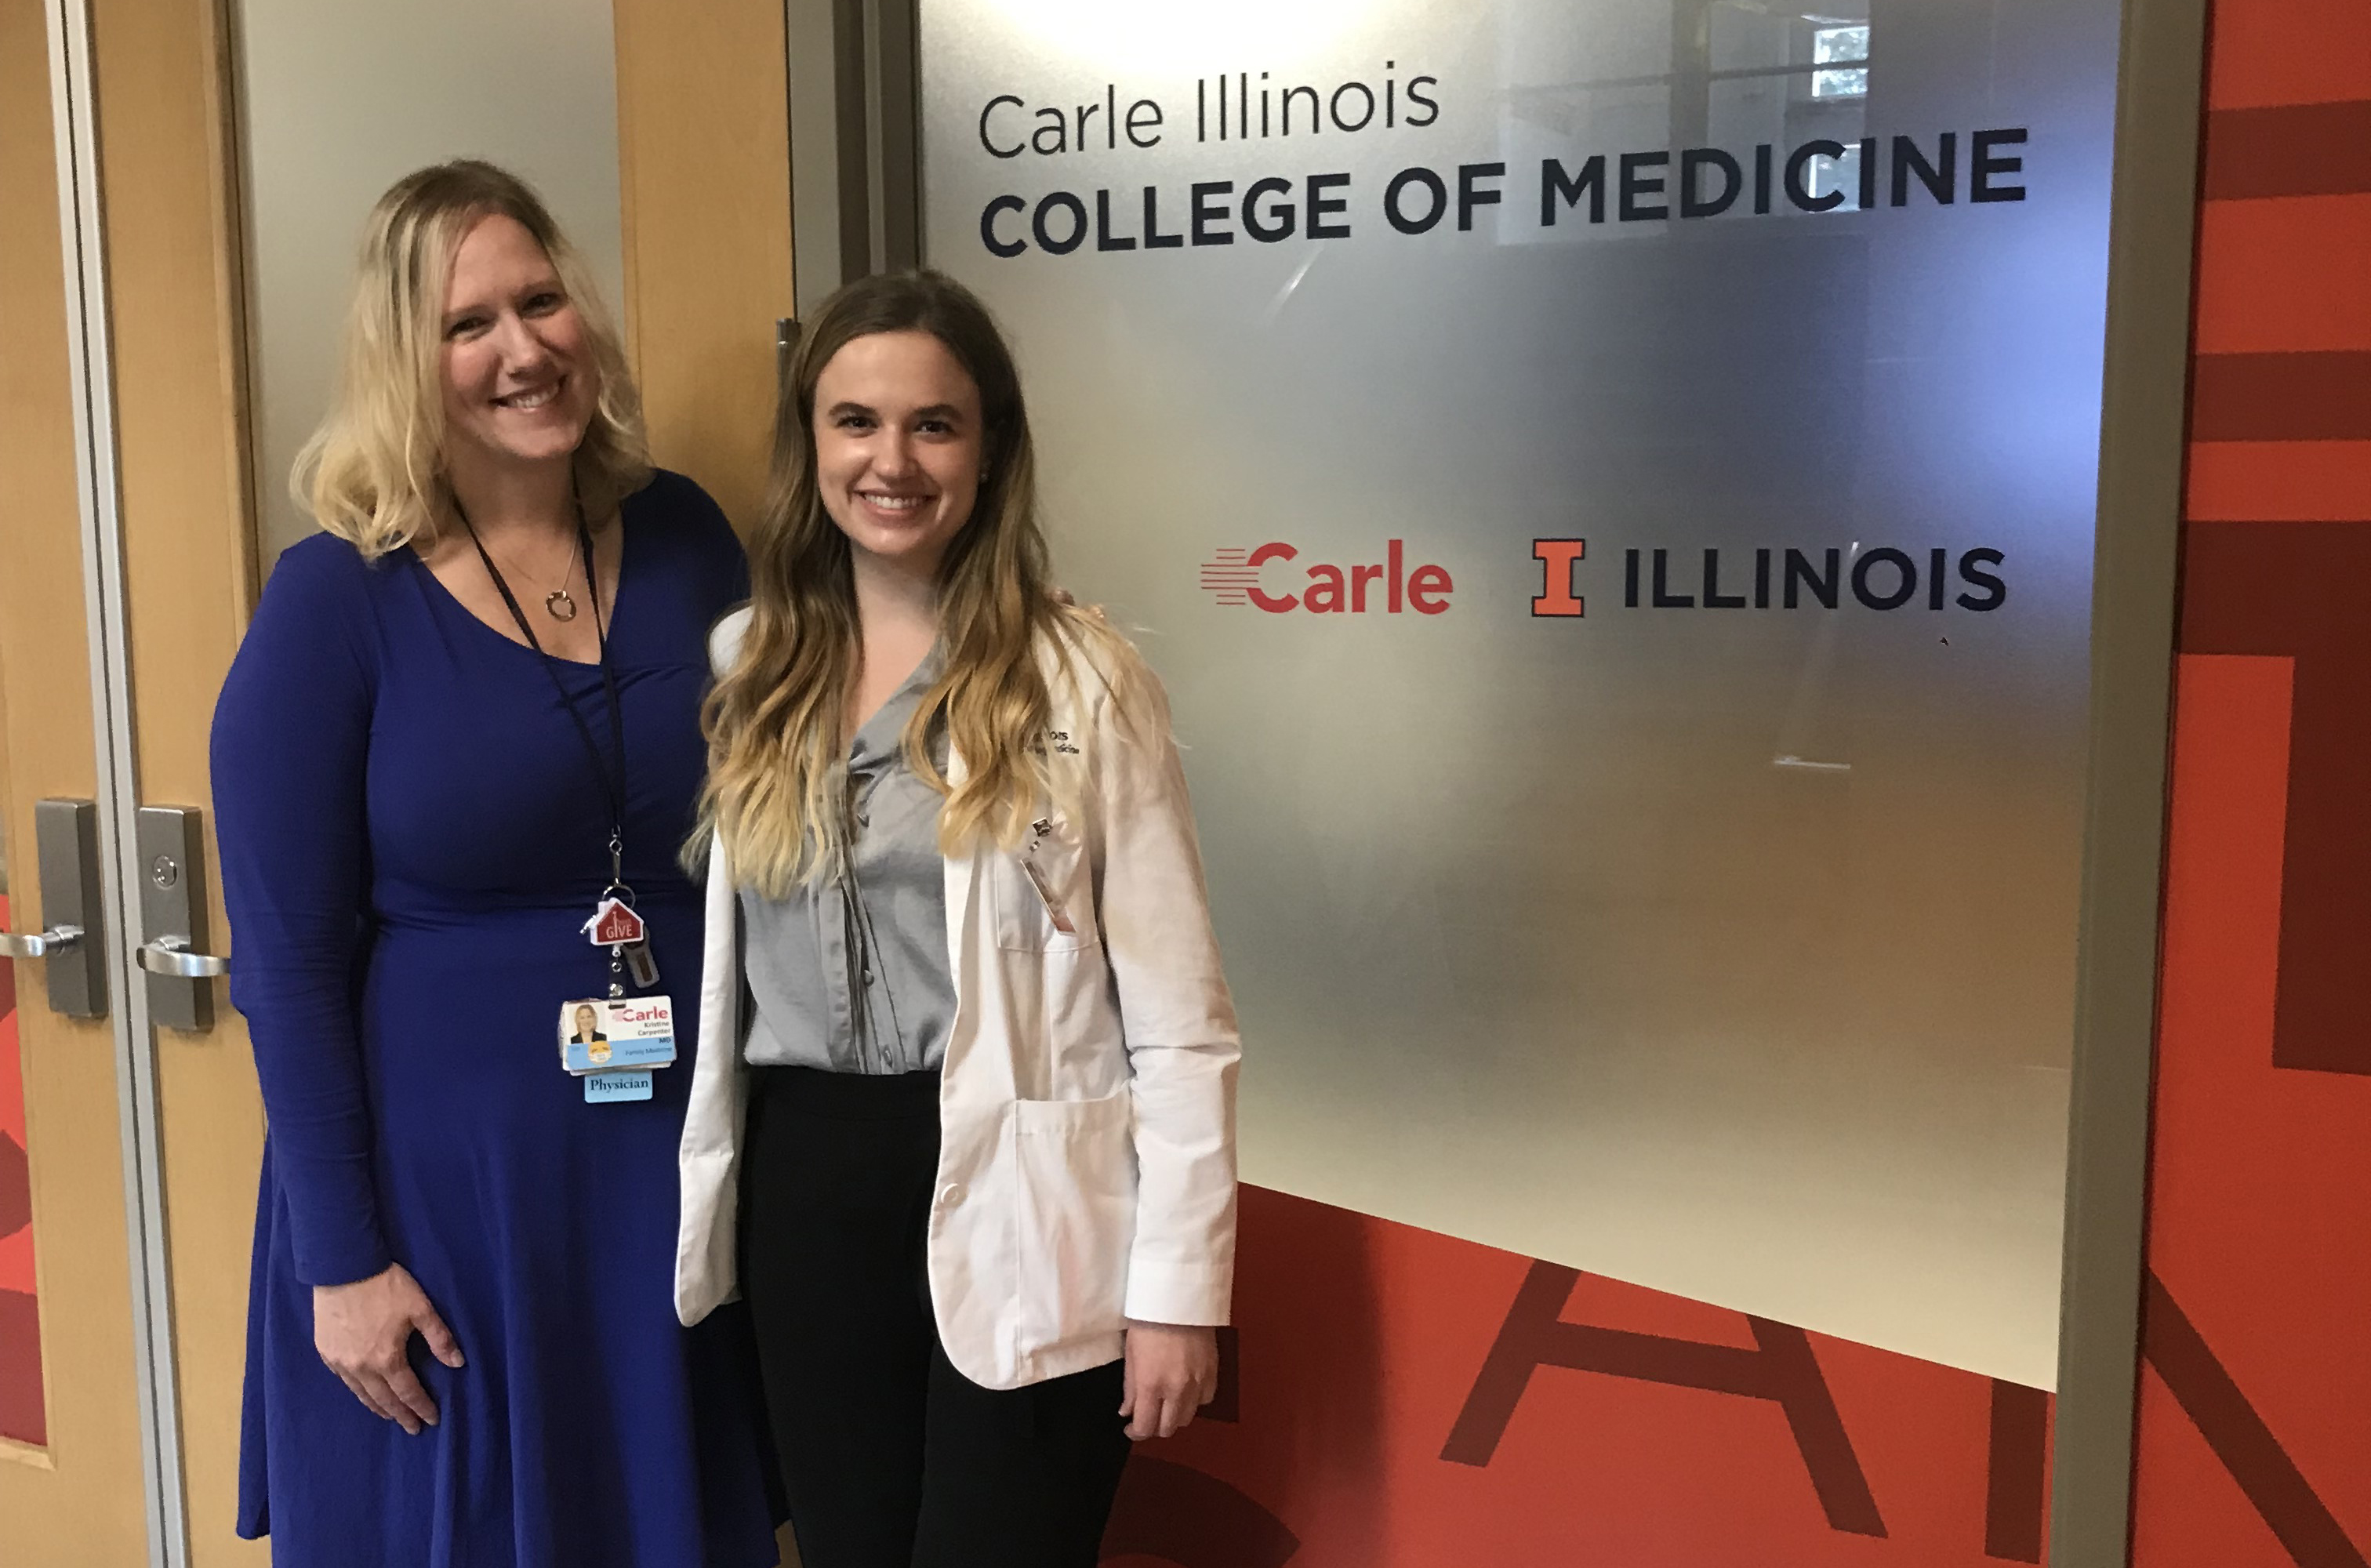 Andrea Hall, Carle Illinois College of Medicine, University of Illinois at Urbana-Champaign